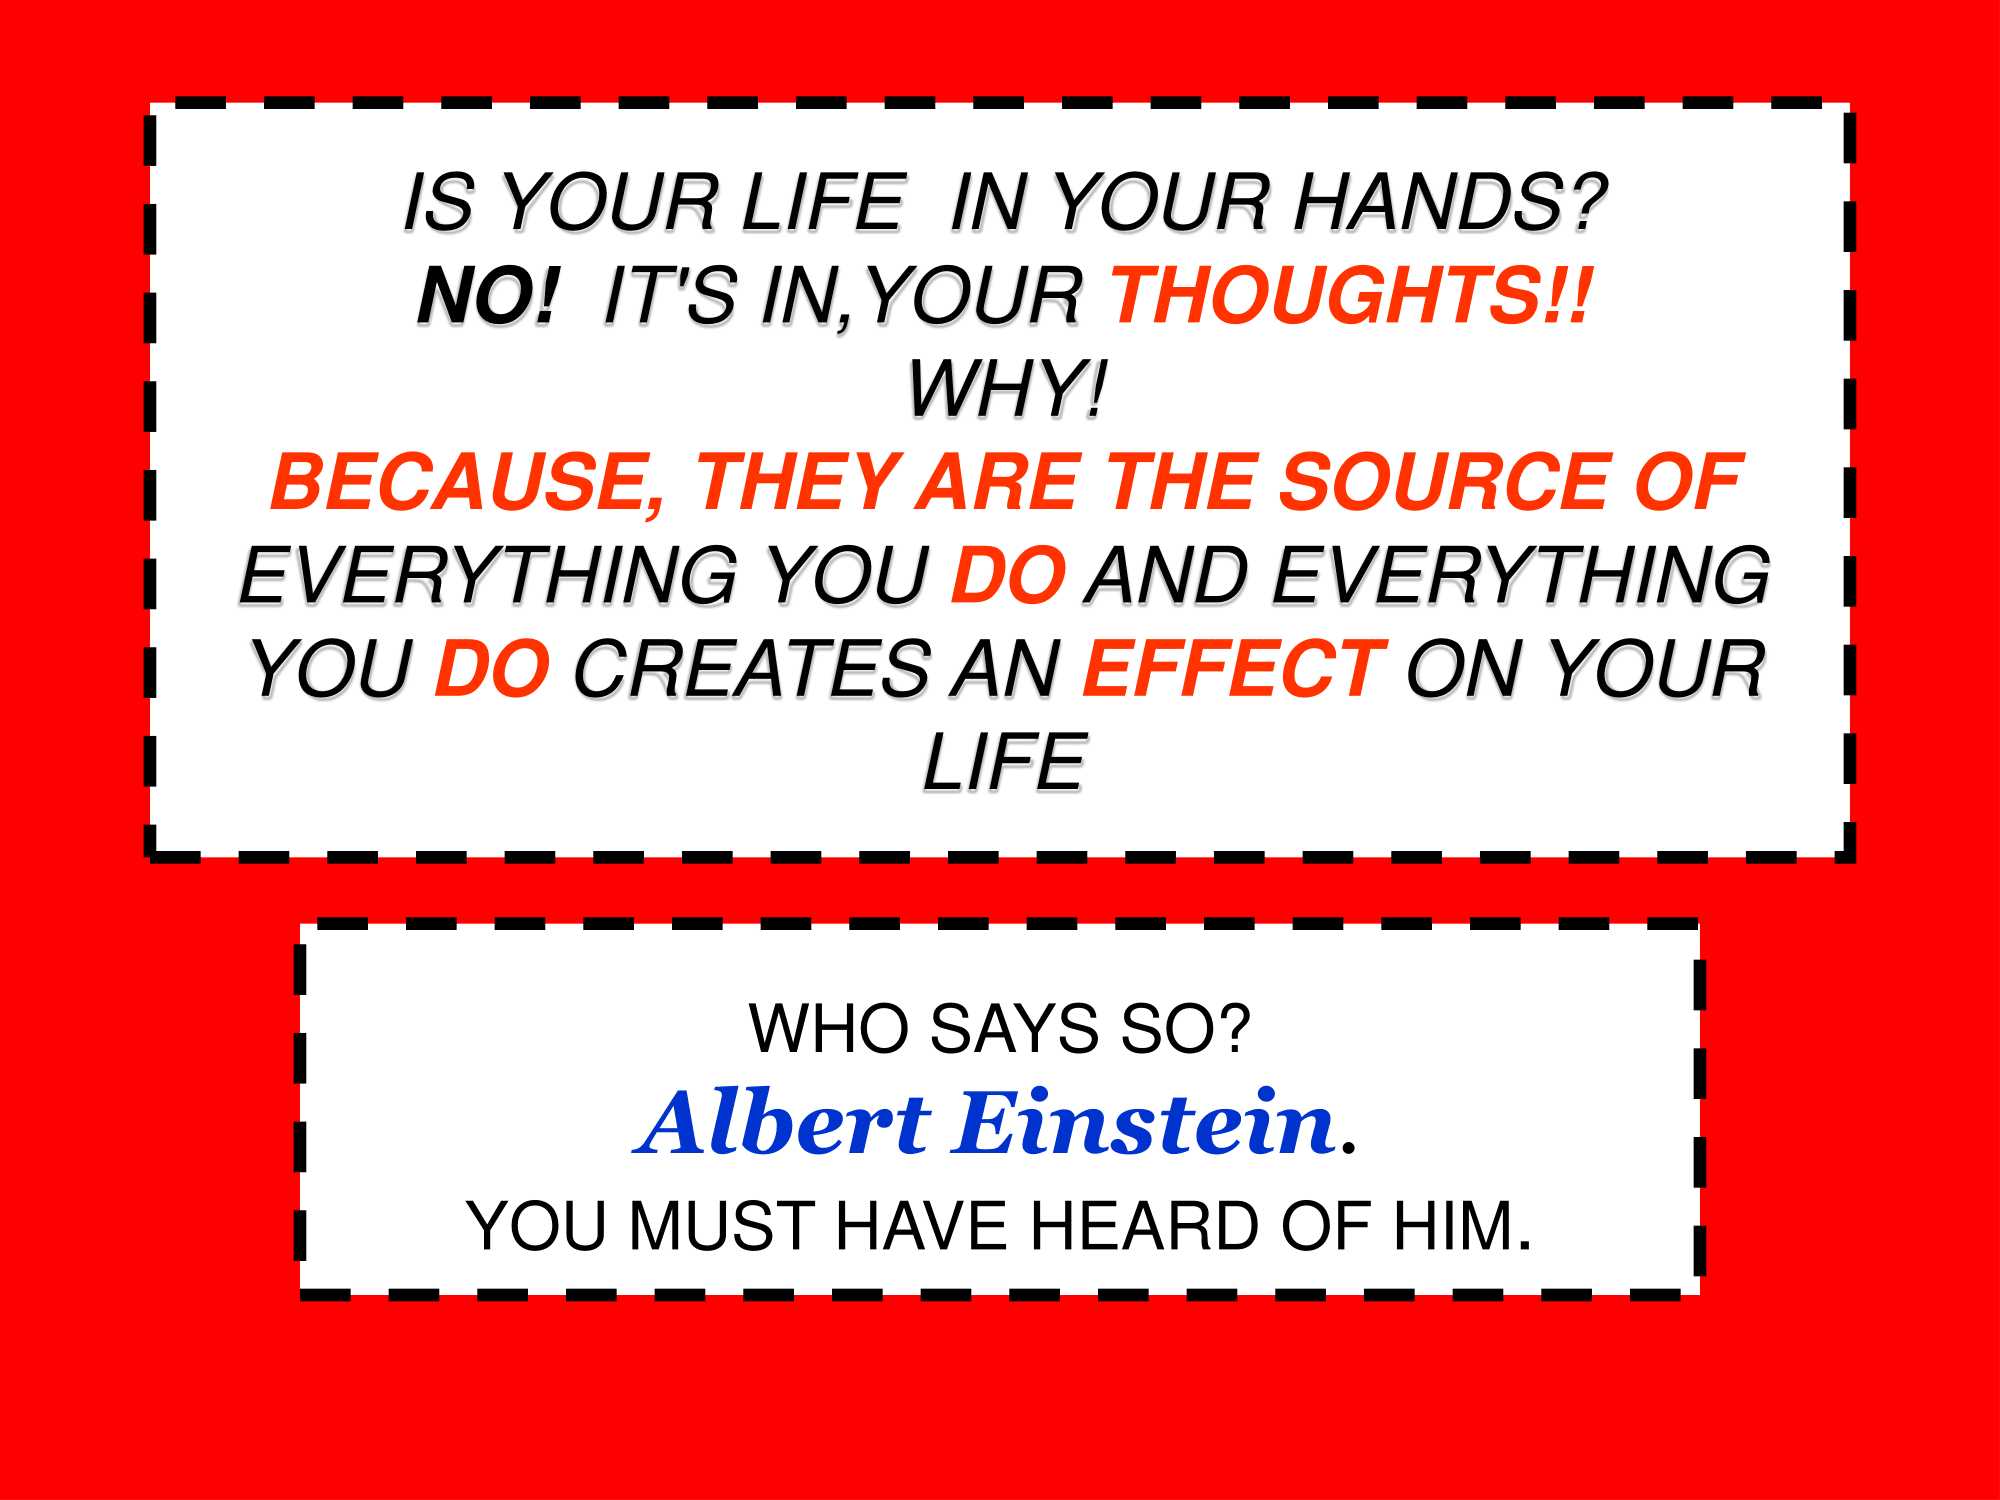 is-your-life-in-your-hands-1